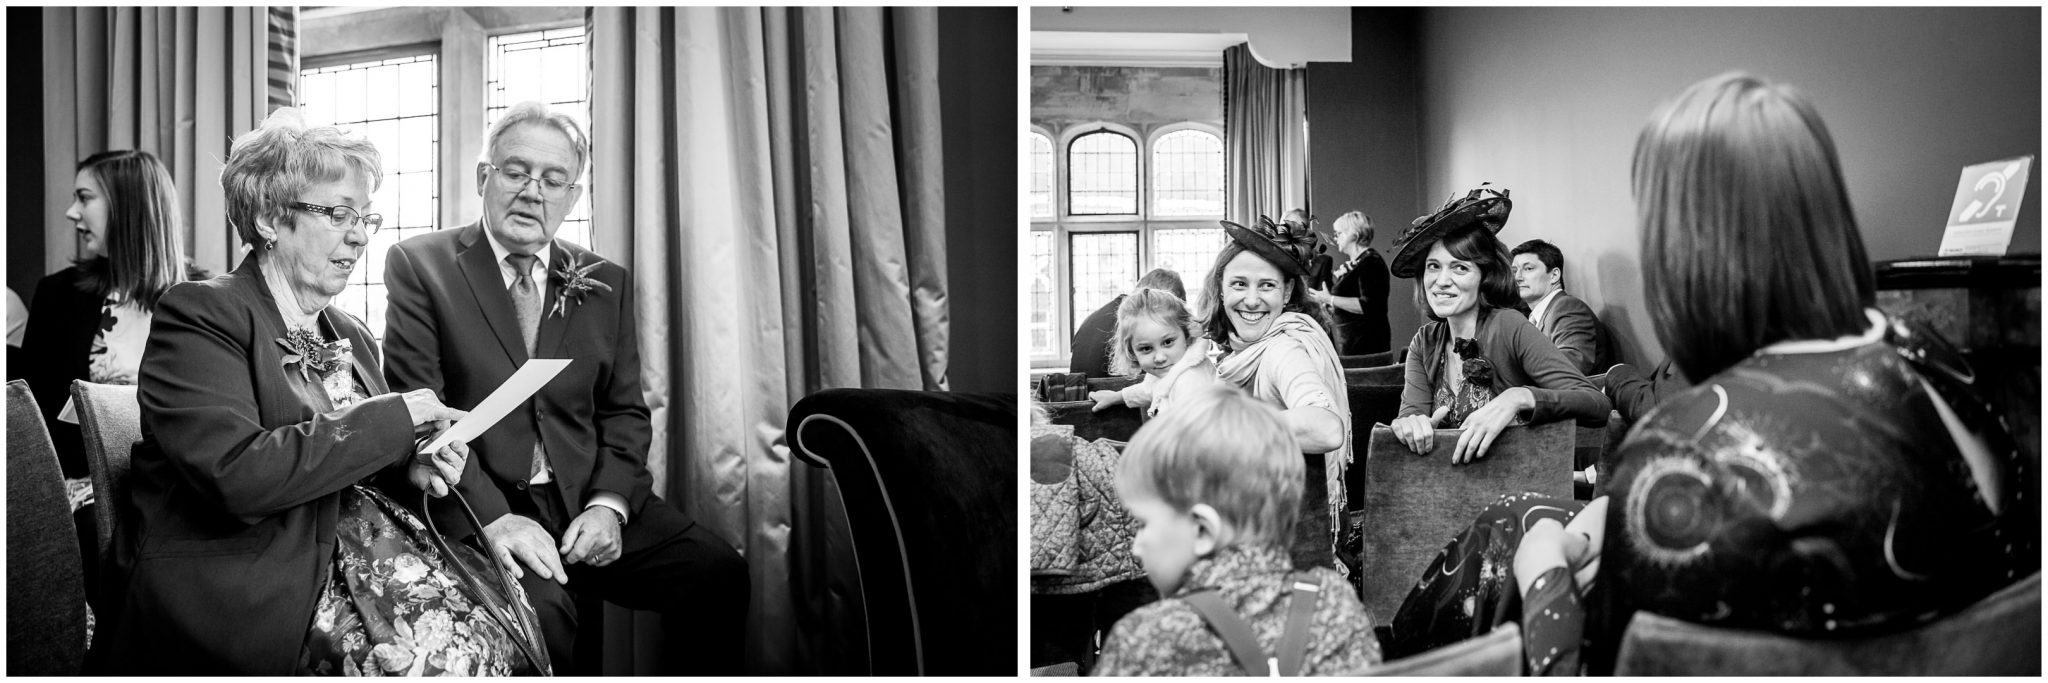 Castle Room Winchester wedding photography guests before ceremony